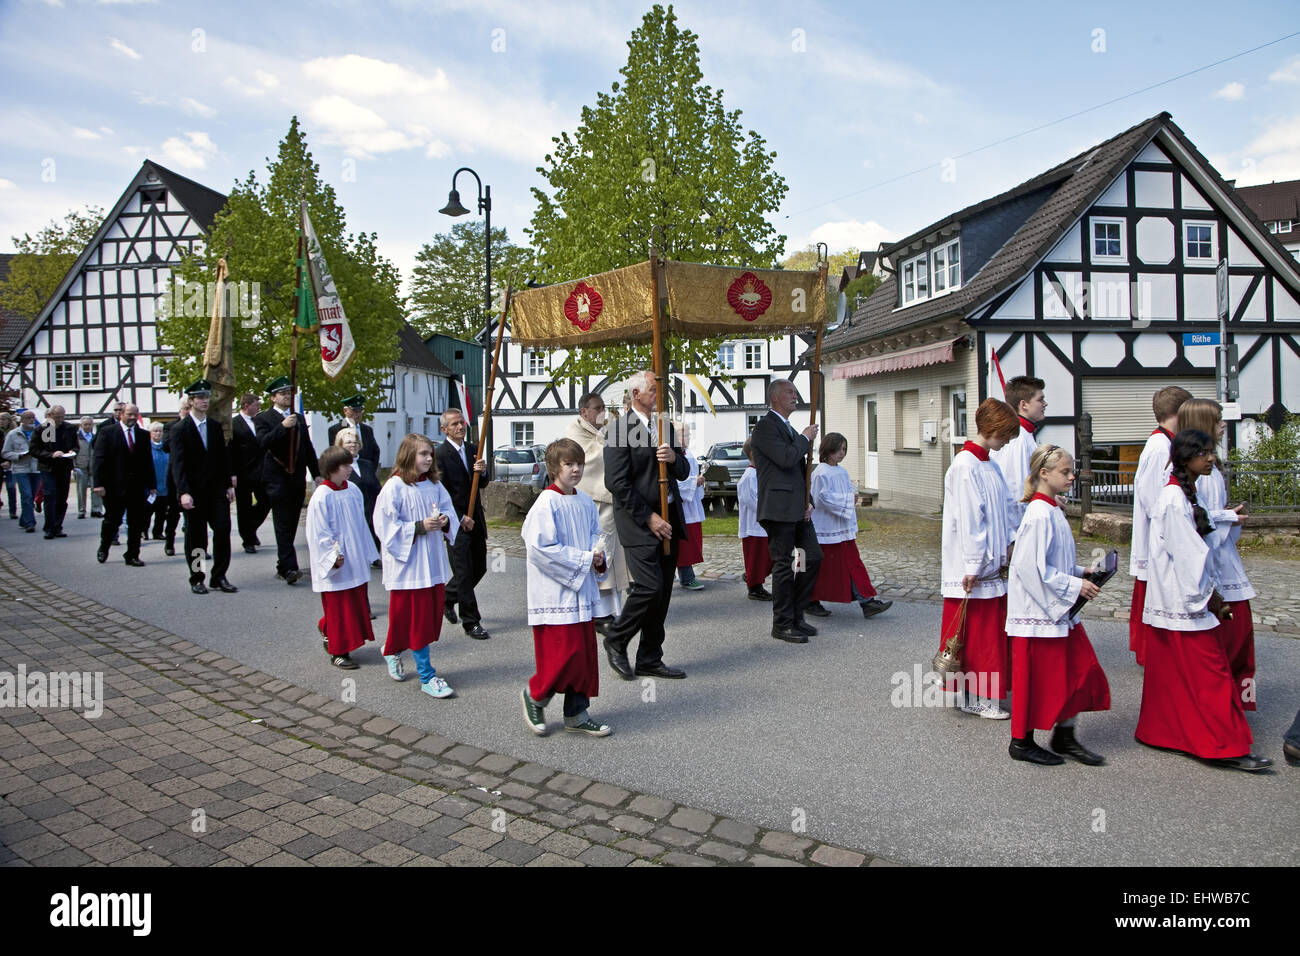 Procession on Ascension Day, Kirchveischede. - Stock Image